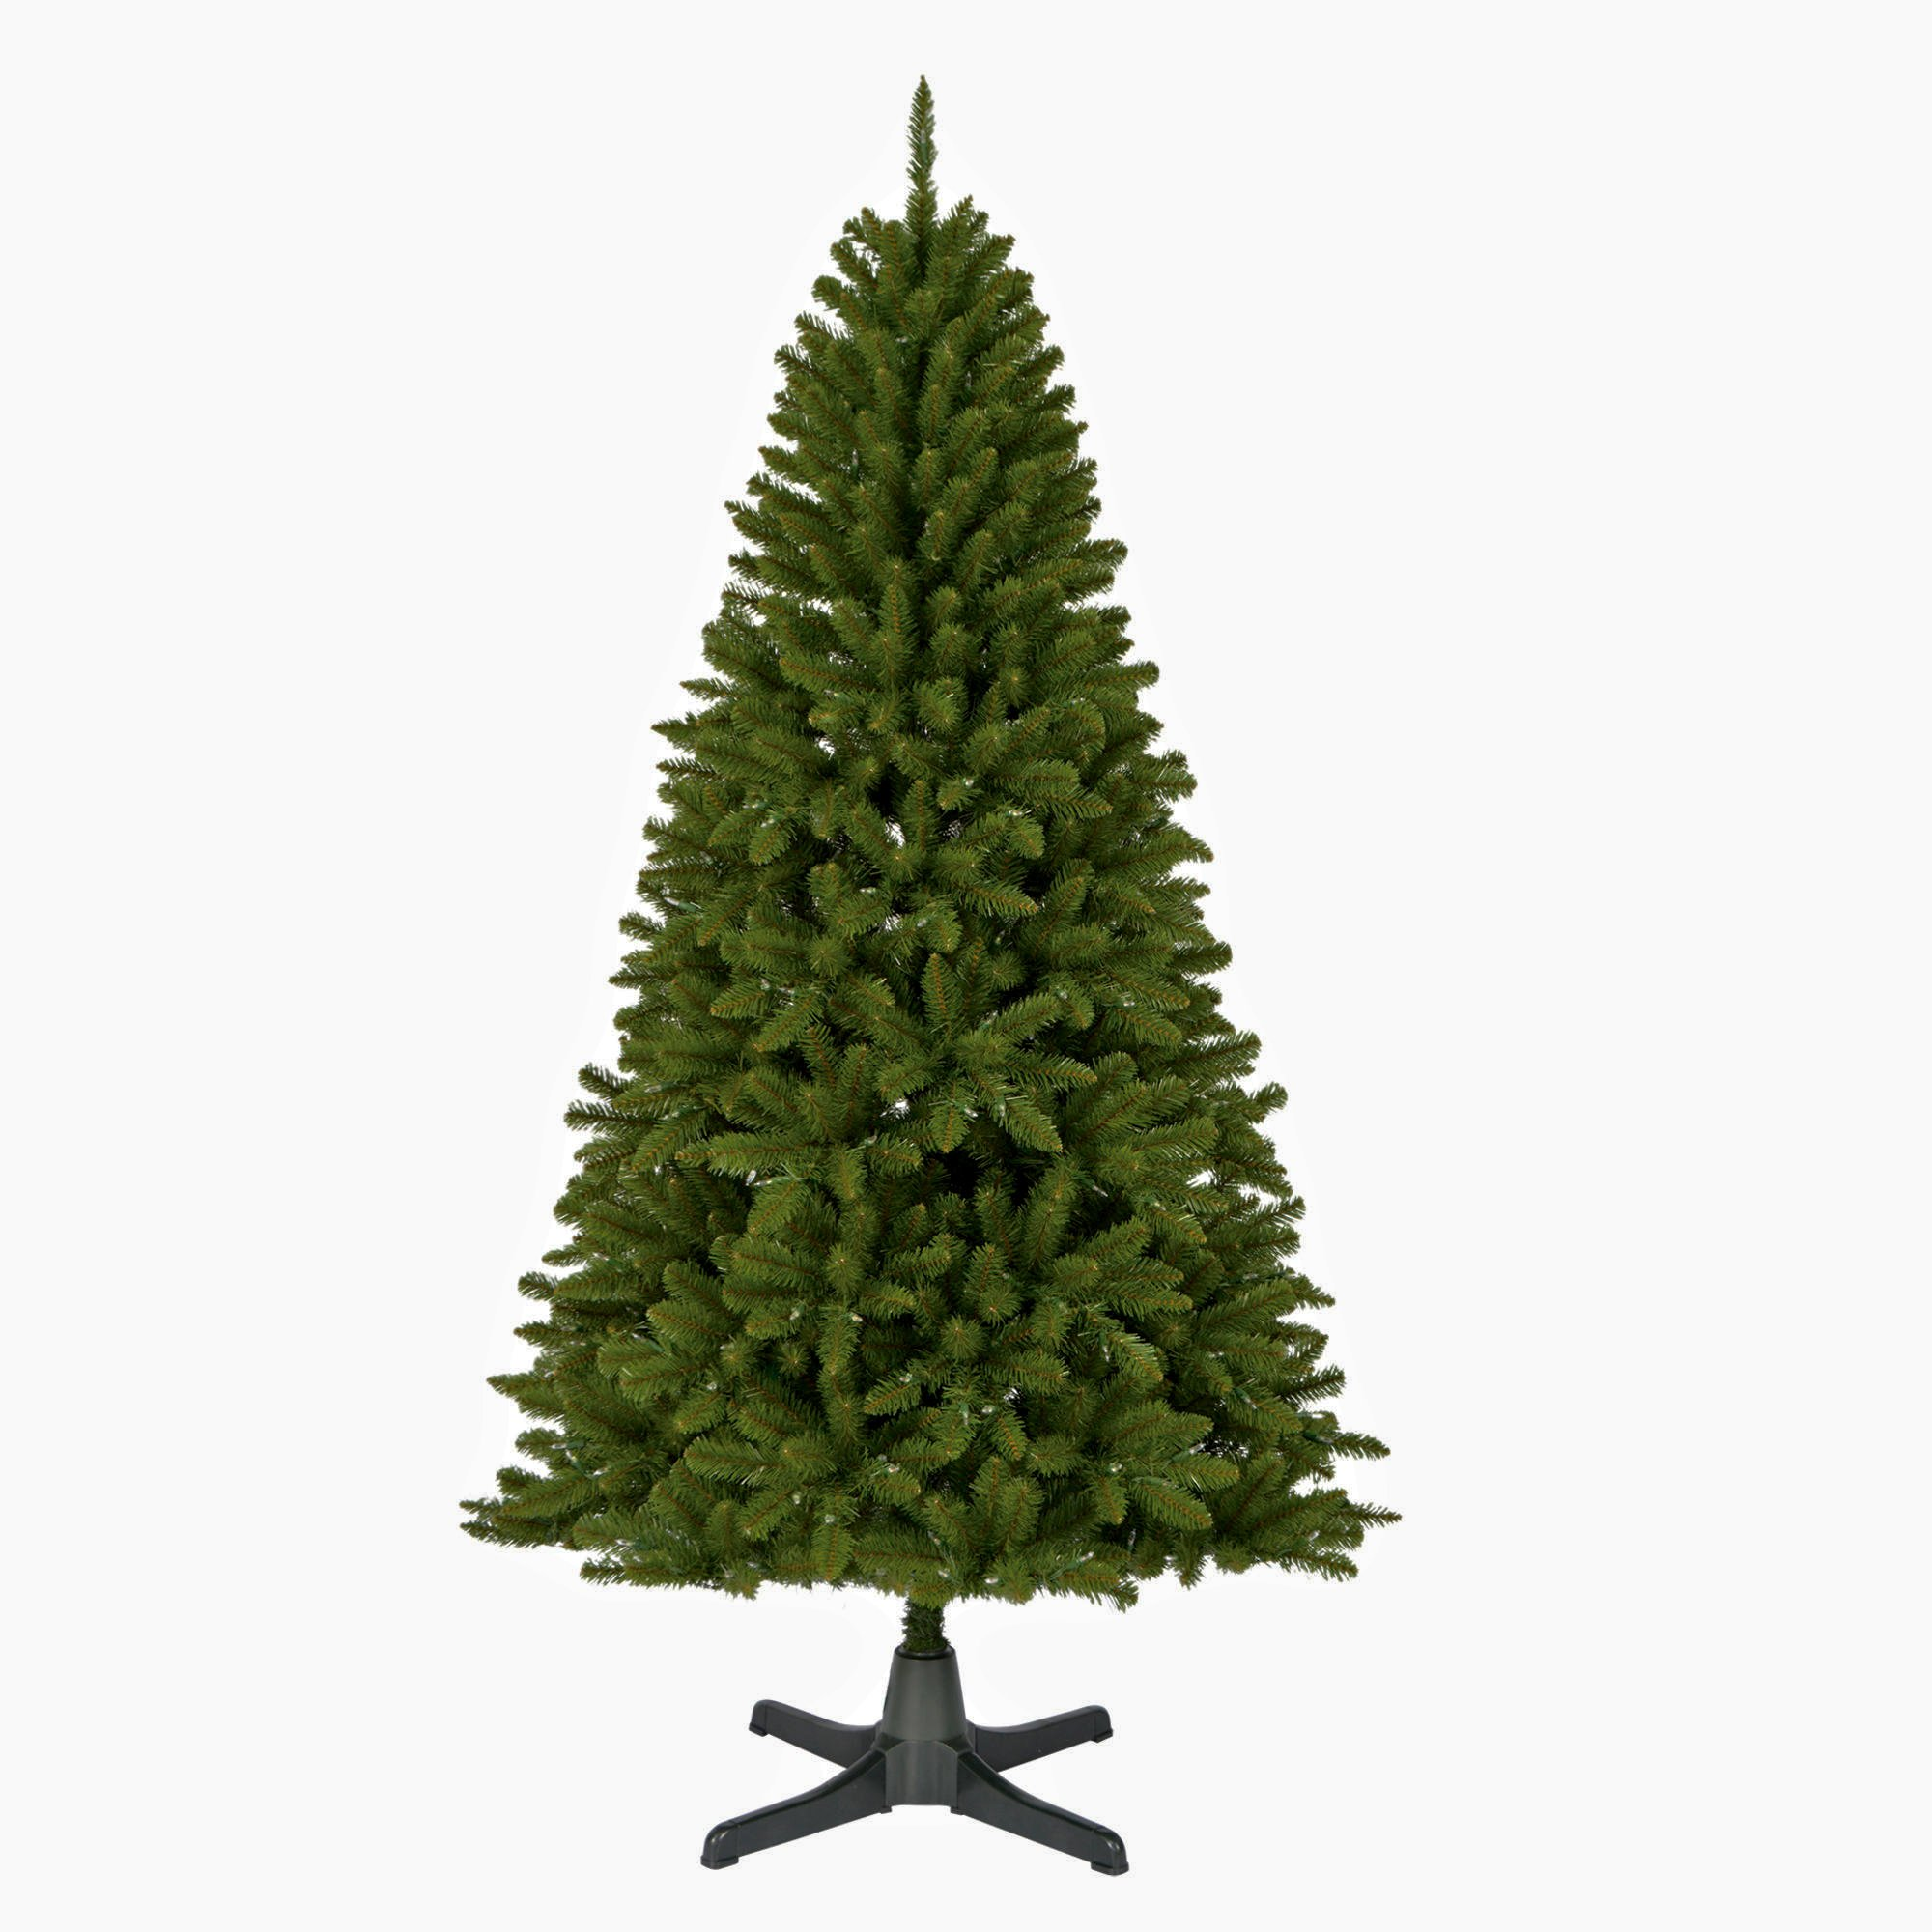 Artificial Christmas Tree. Fake Xmas 6.5 Foot Green Fir Tree With Densely, Lush Foliage. It's Classic Pine Shape Looks Neat & Natural. Great For Indoor, Holiday Season Party Decor & Festive Mood.